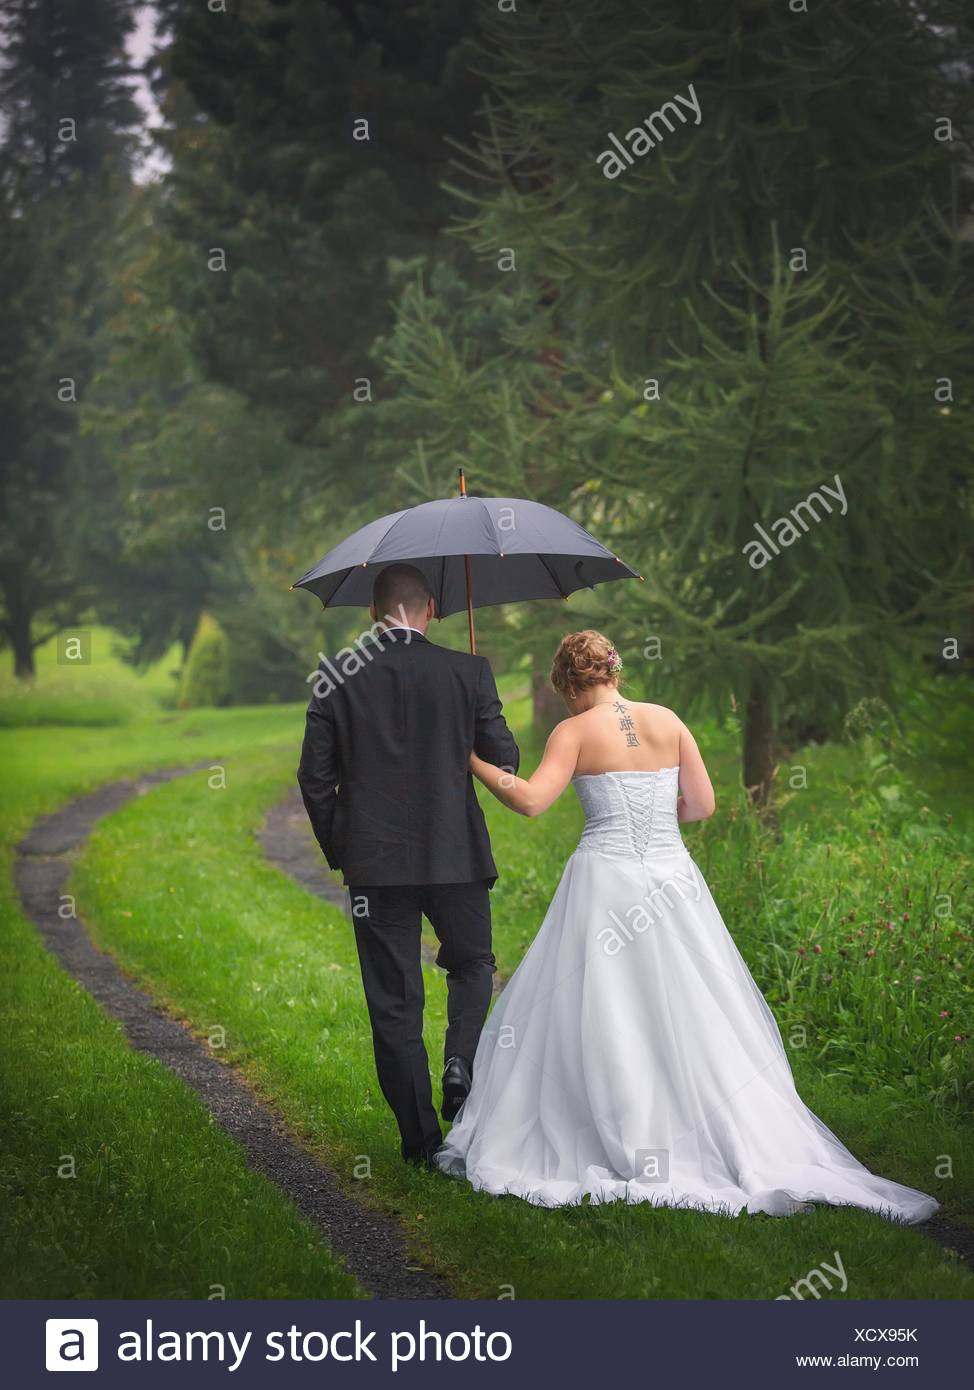 The newlyweds - Stock Image